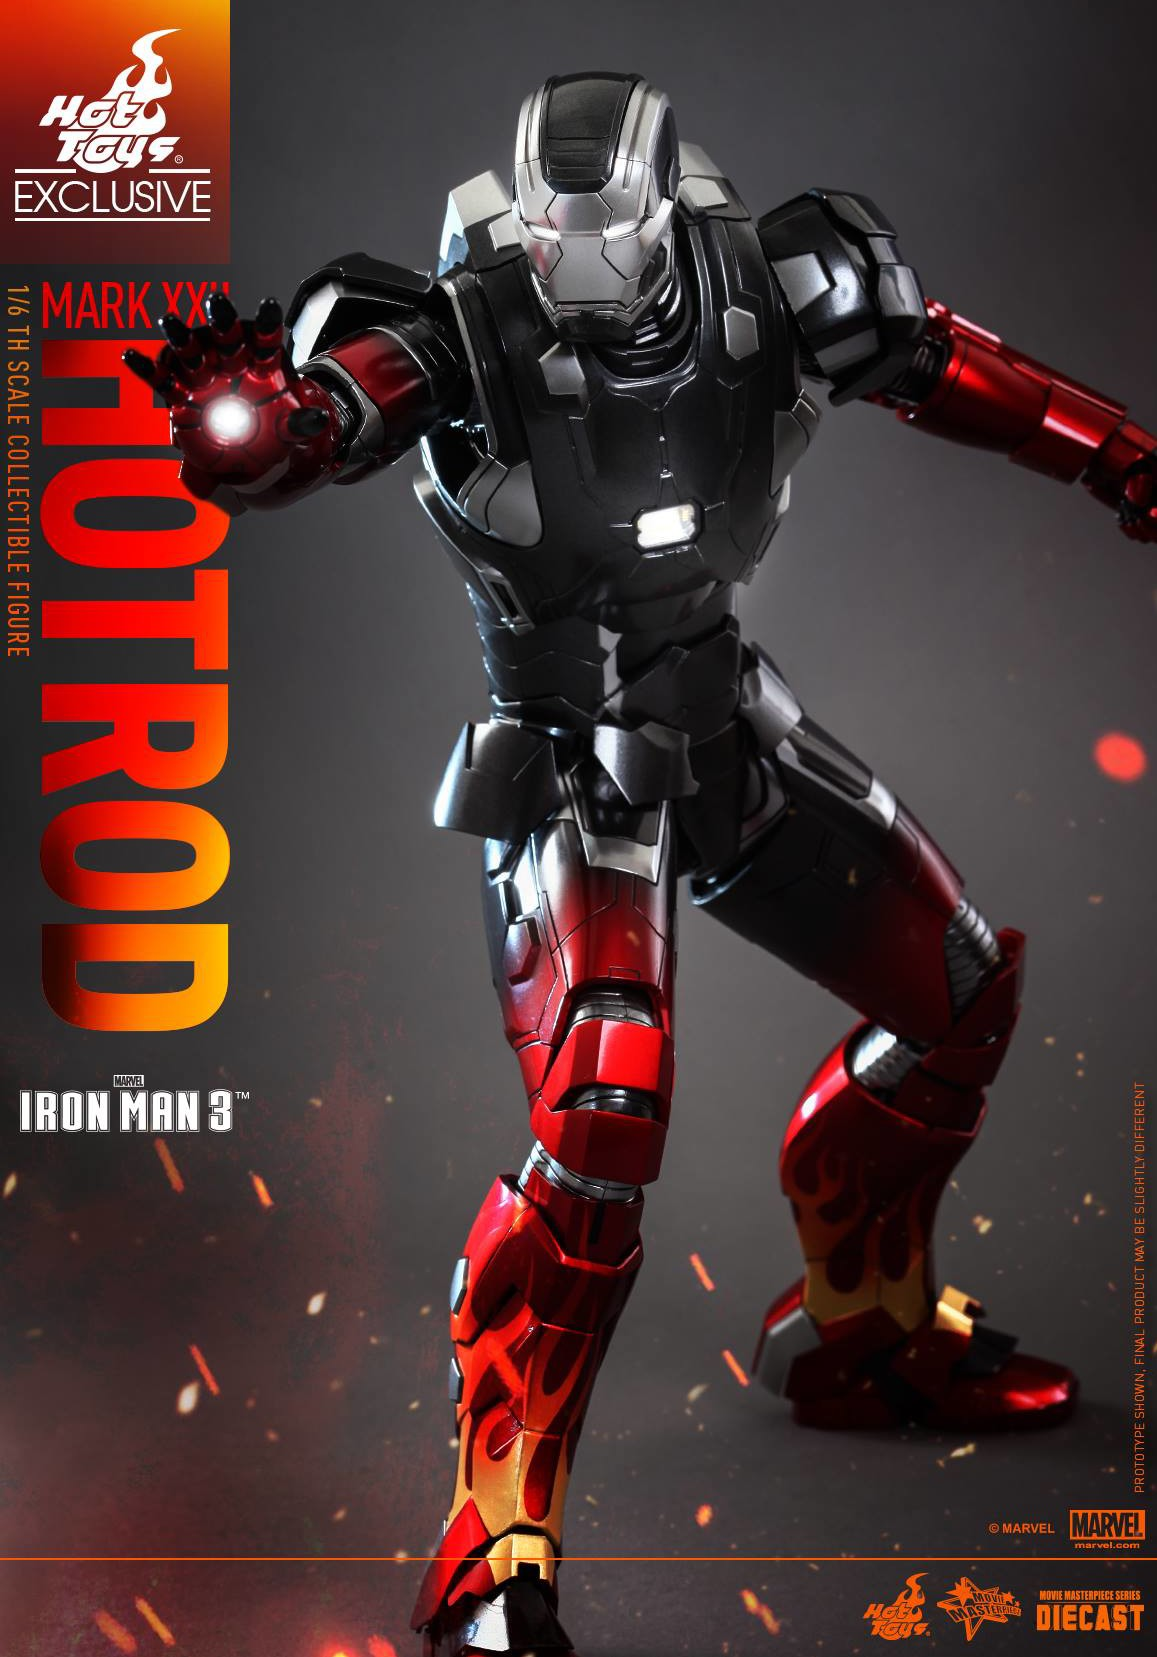 Hot Toys Hot Rod Iron Man Die-Cast Figure Up for Order ...